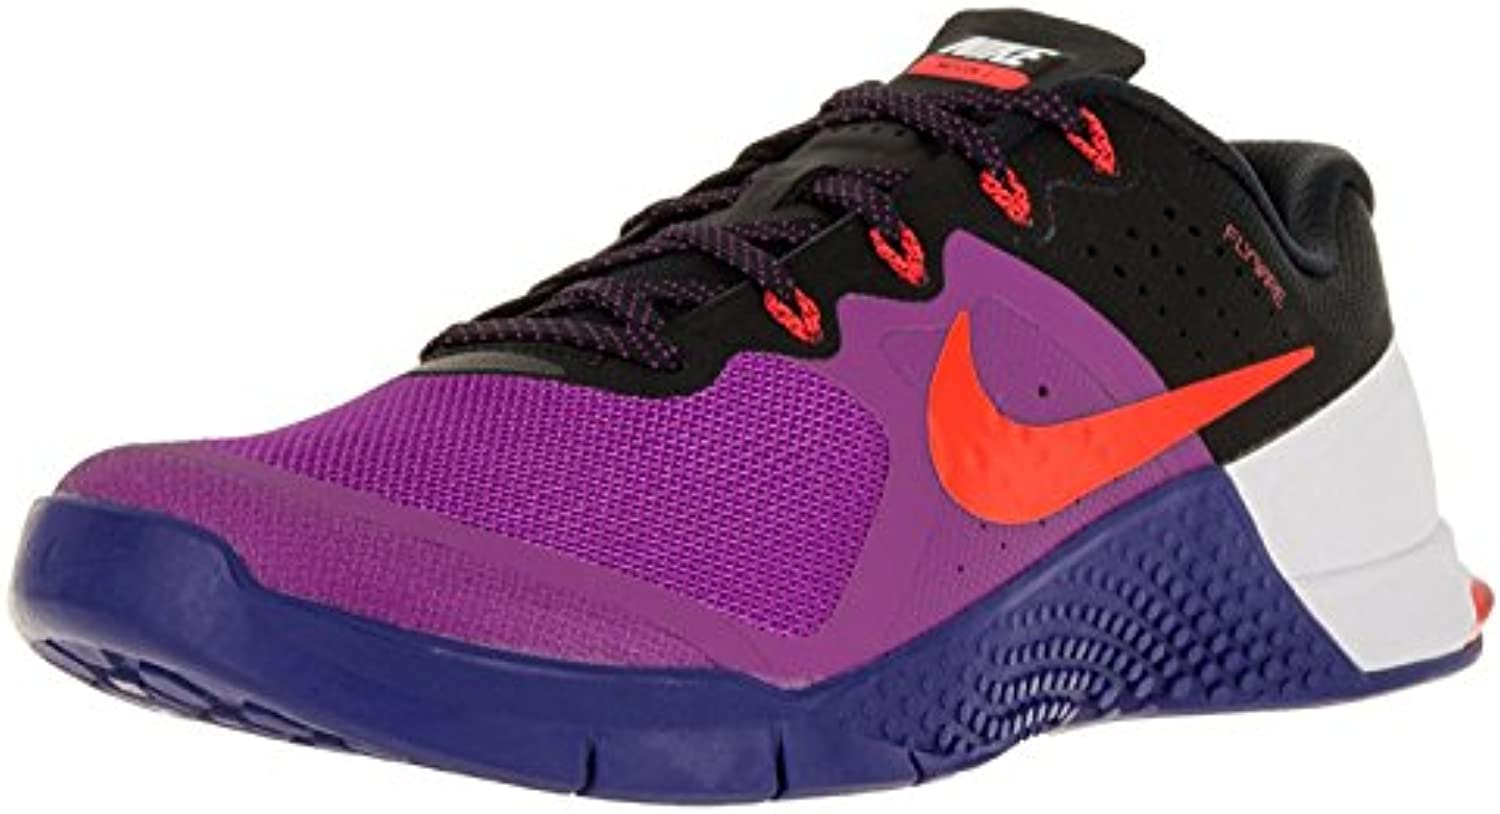 Nike Metcon 2 Cross Training Shoes, Hyper Violet/Concord/Black/Total Crimson, 47.5 D(M) EU/12.5 D(M) UK